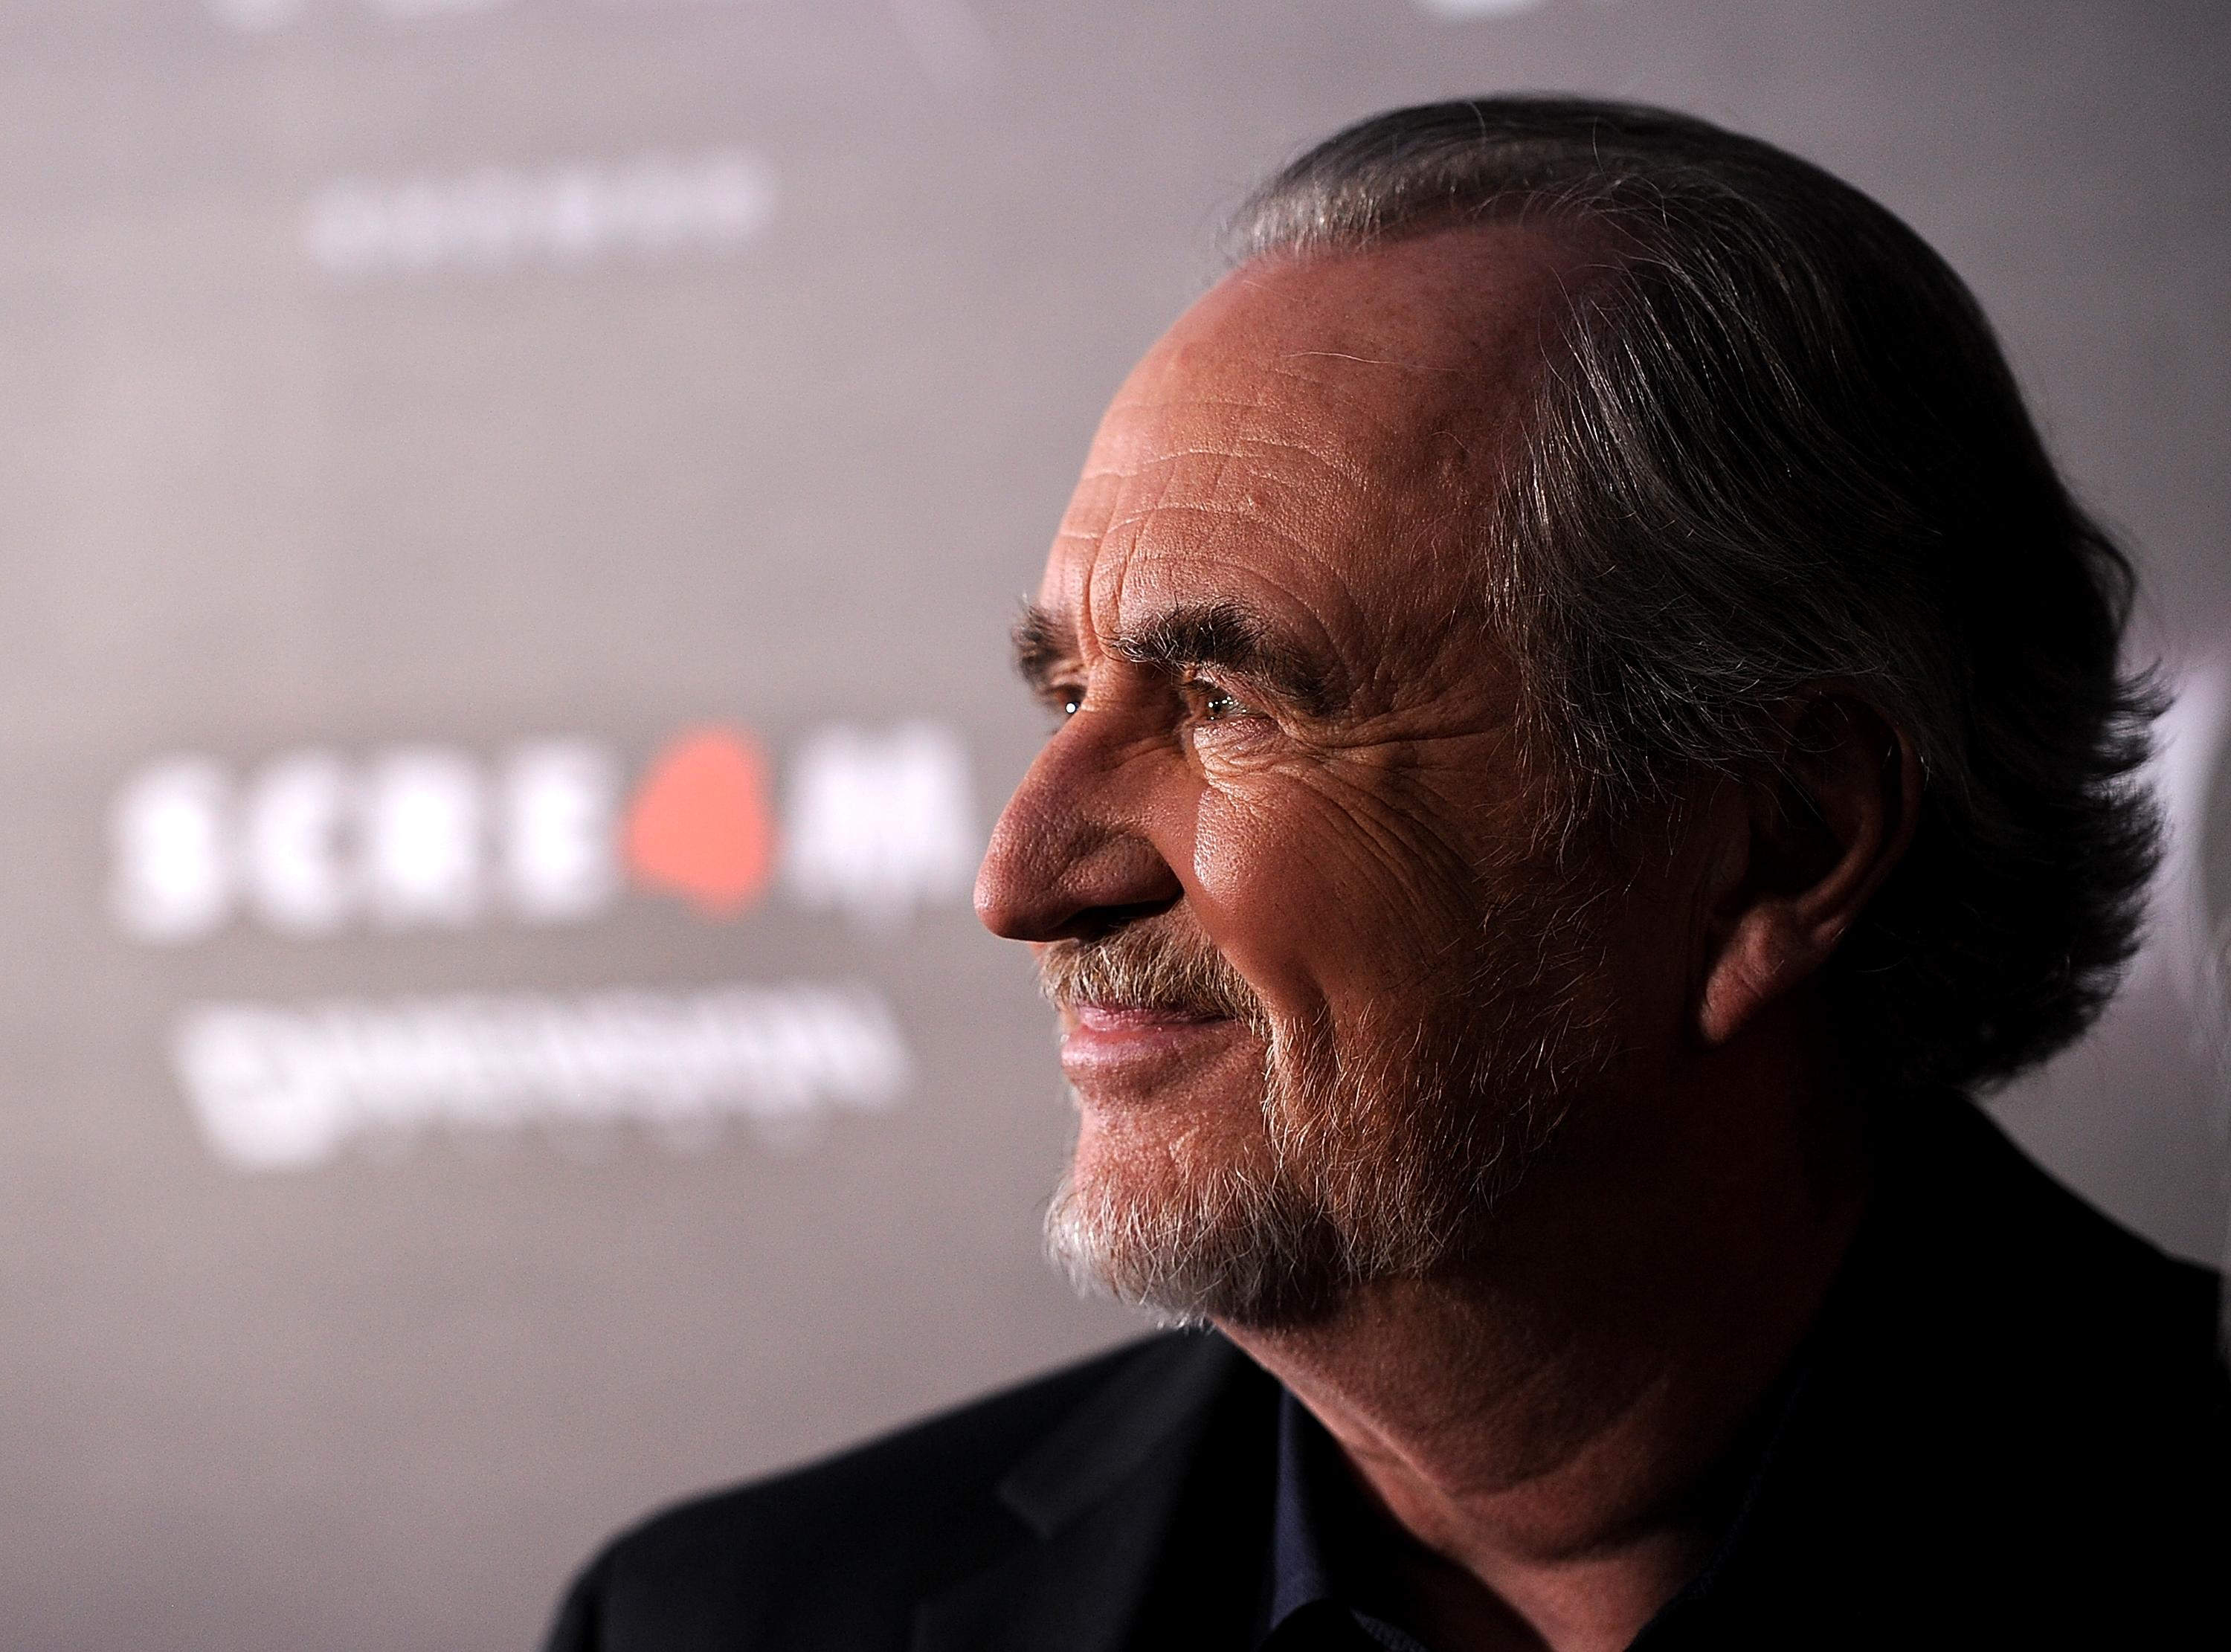 Wes Craven Dies: Veteran Director Of 'Scream,' 'Nightmare On Elm Street' Was 76